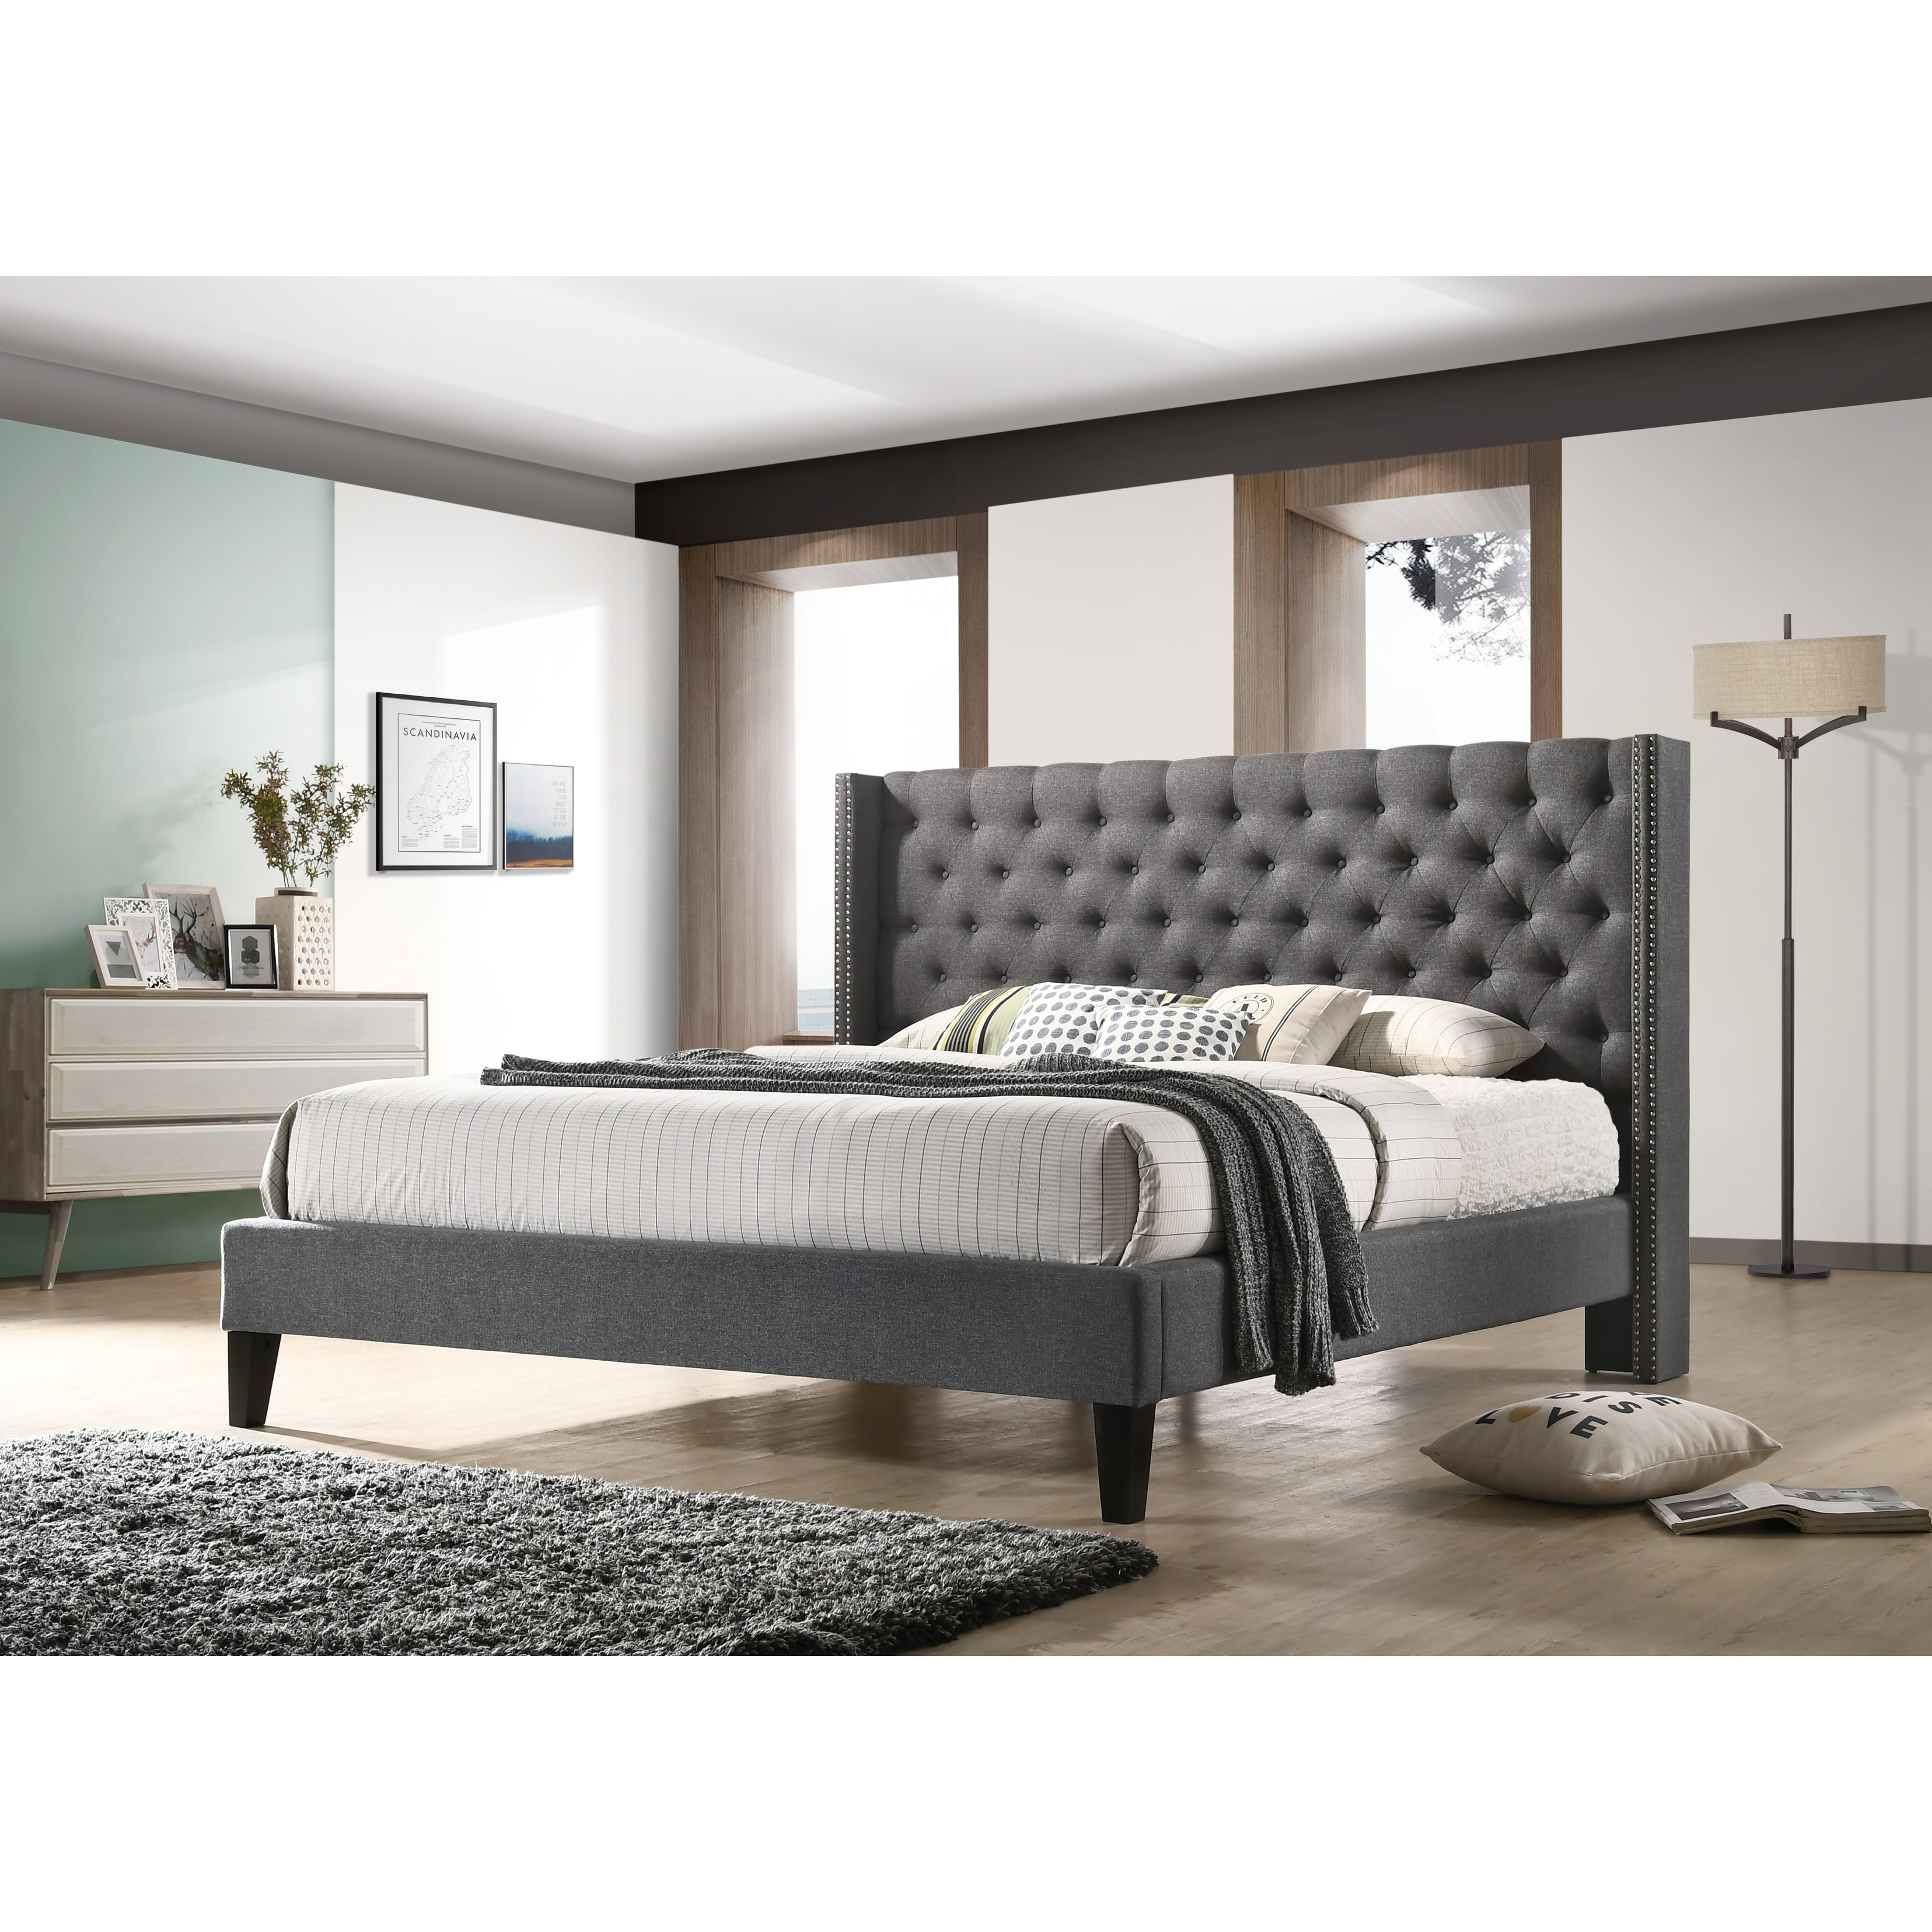 Shop Luxeo Pacifica King Size Tufted Grey Contemporary Bed